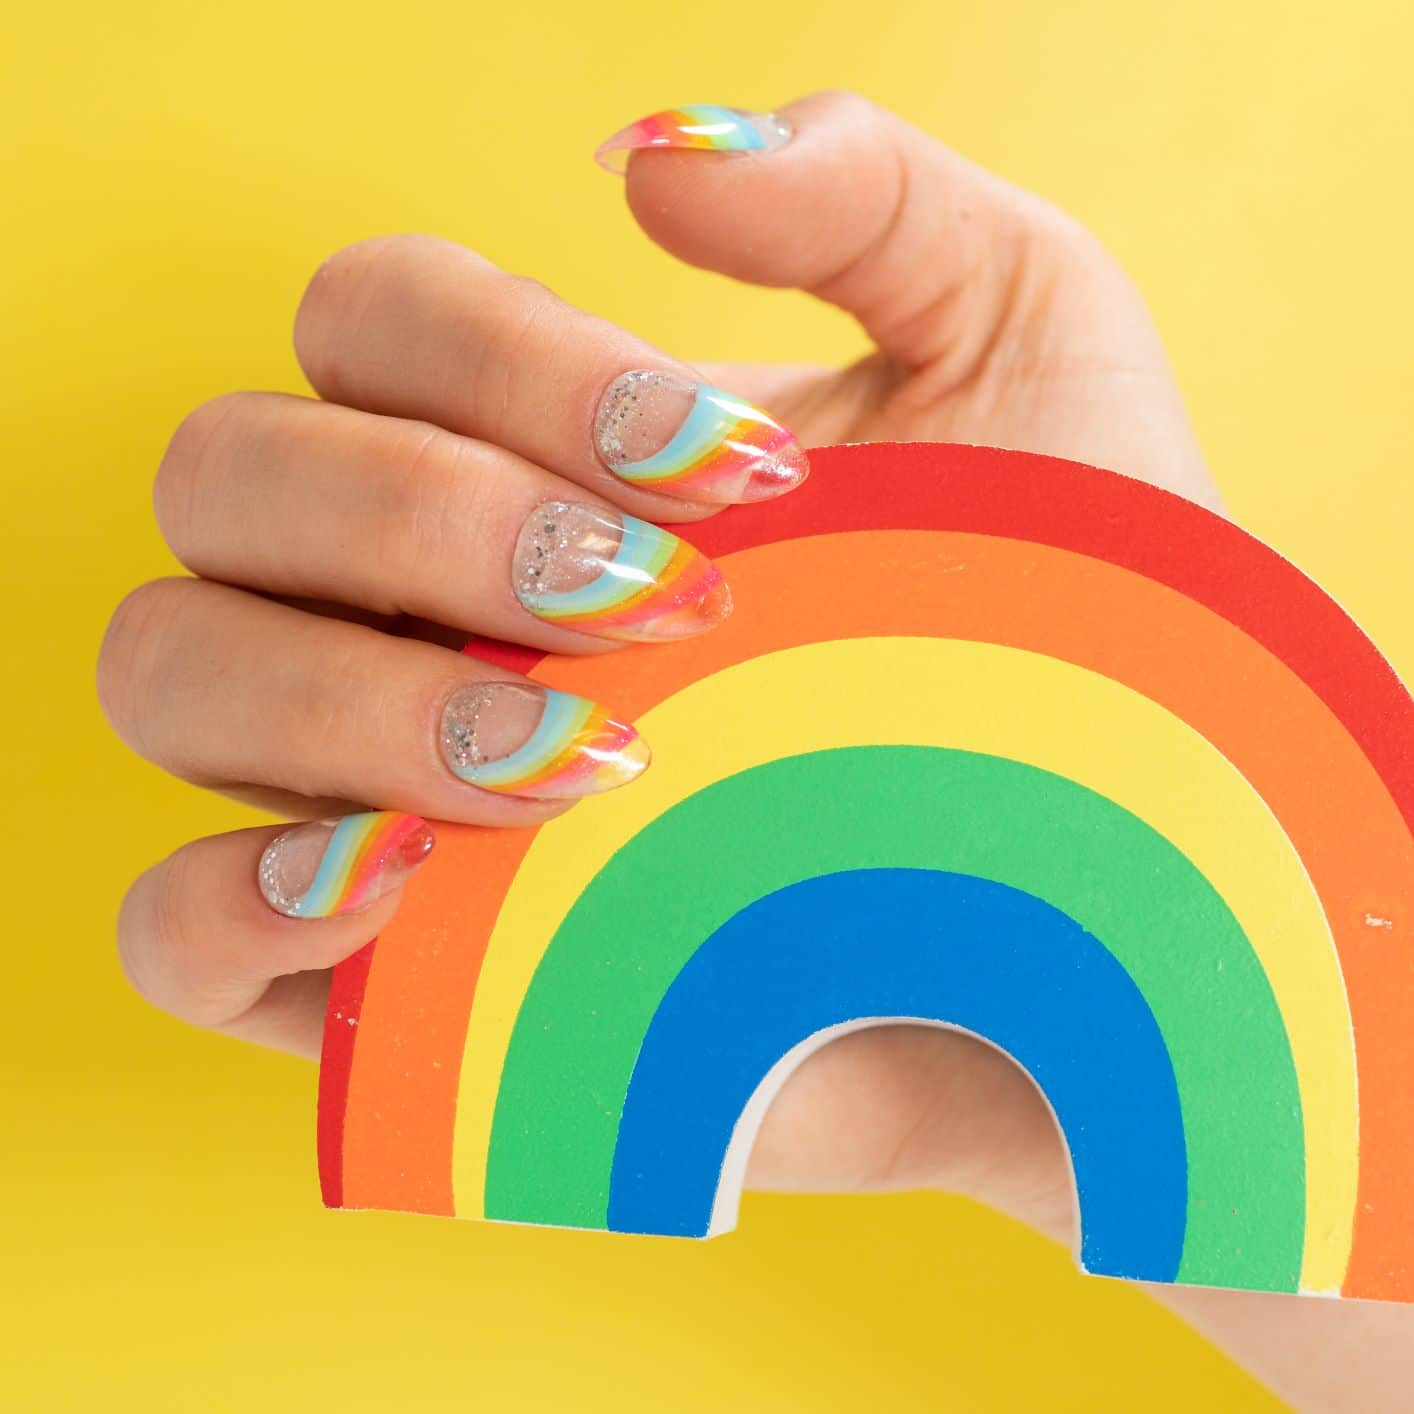 Rainbow-themed art on clear nails